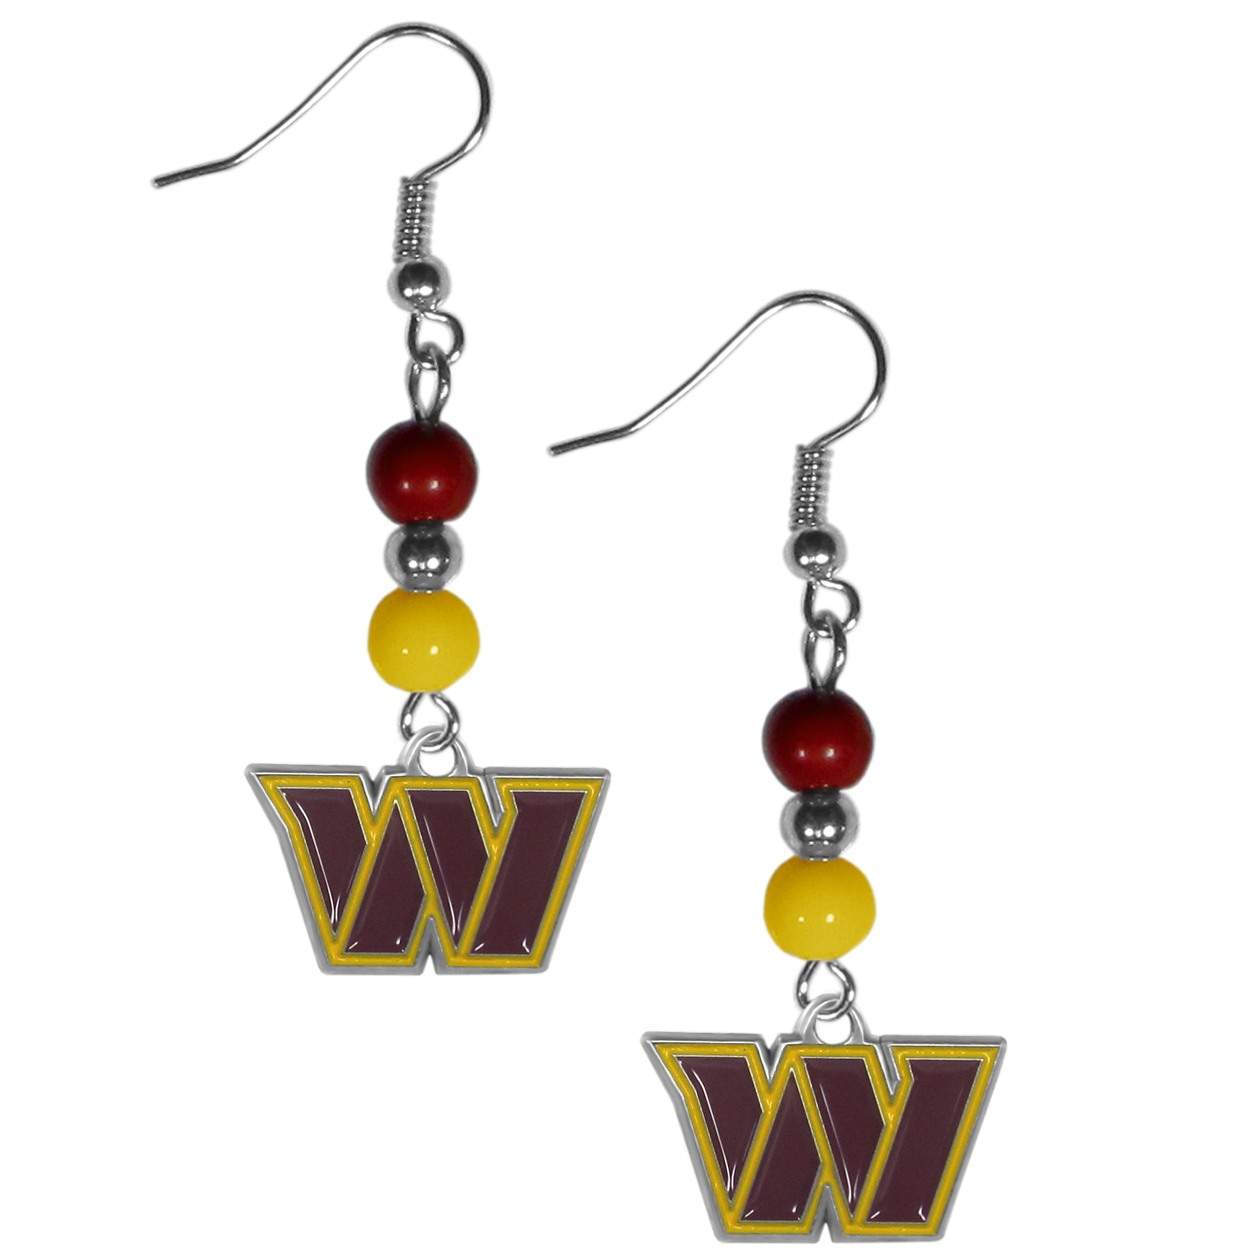 Washington Redskins Fan Bead Dangle Earrings - Love your team, show it off with our Washington Redskins bead dangle earrings! These super cute earrings hang approximately 2 inches and features 2 team colored beads and a high polish team charm. A must have for game day!